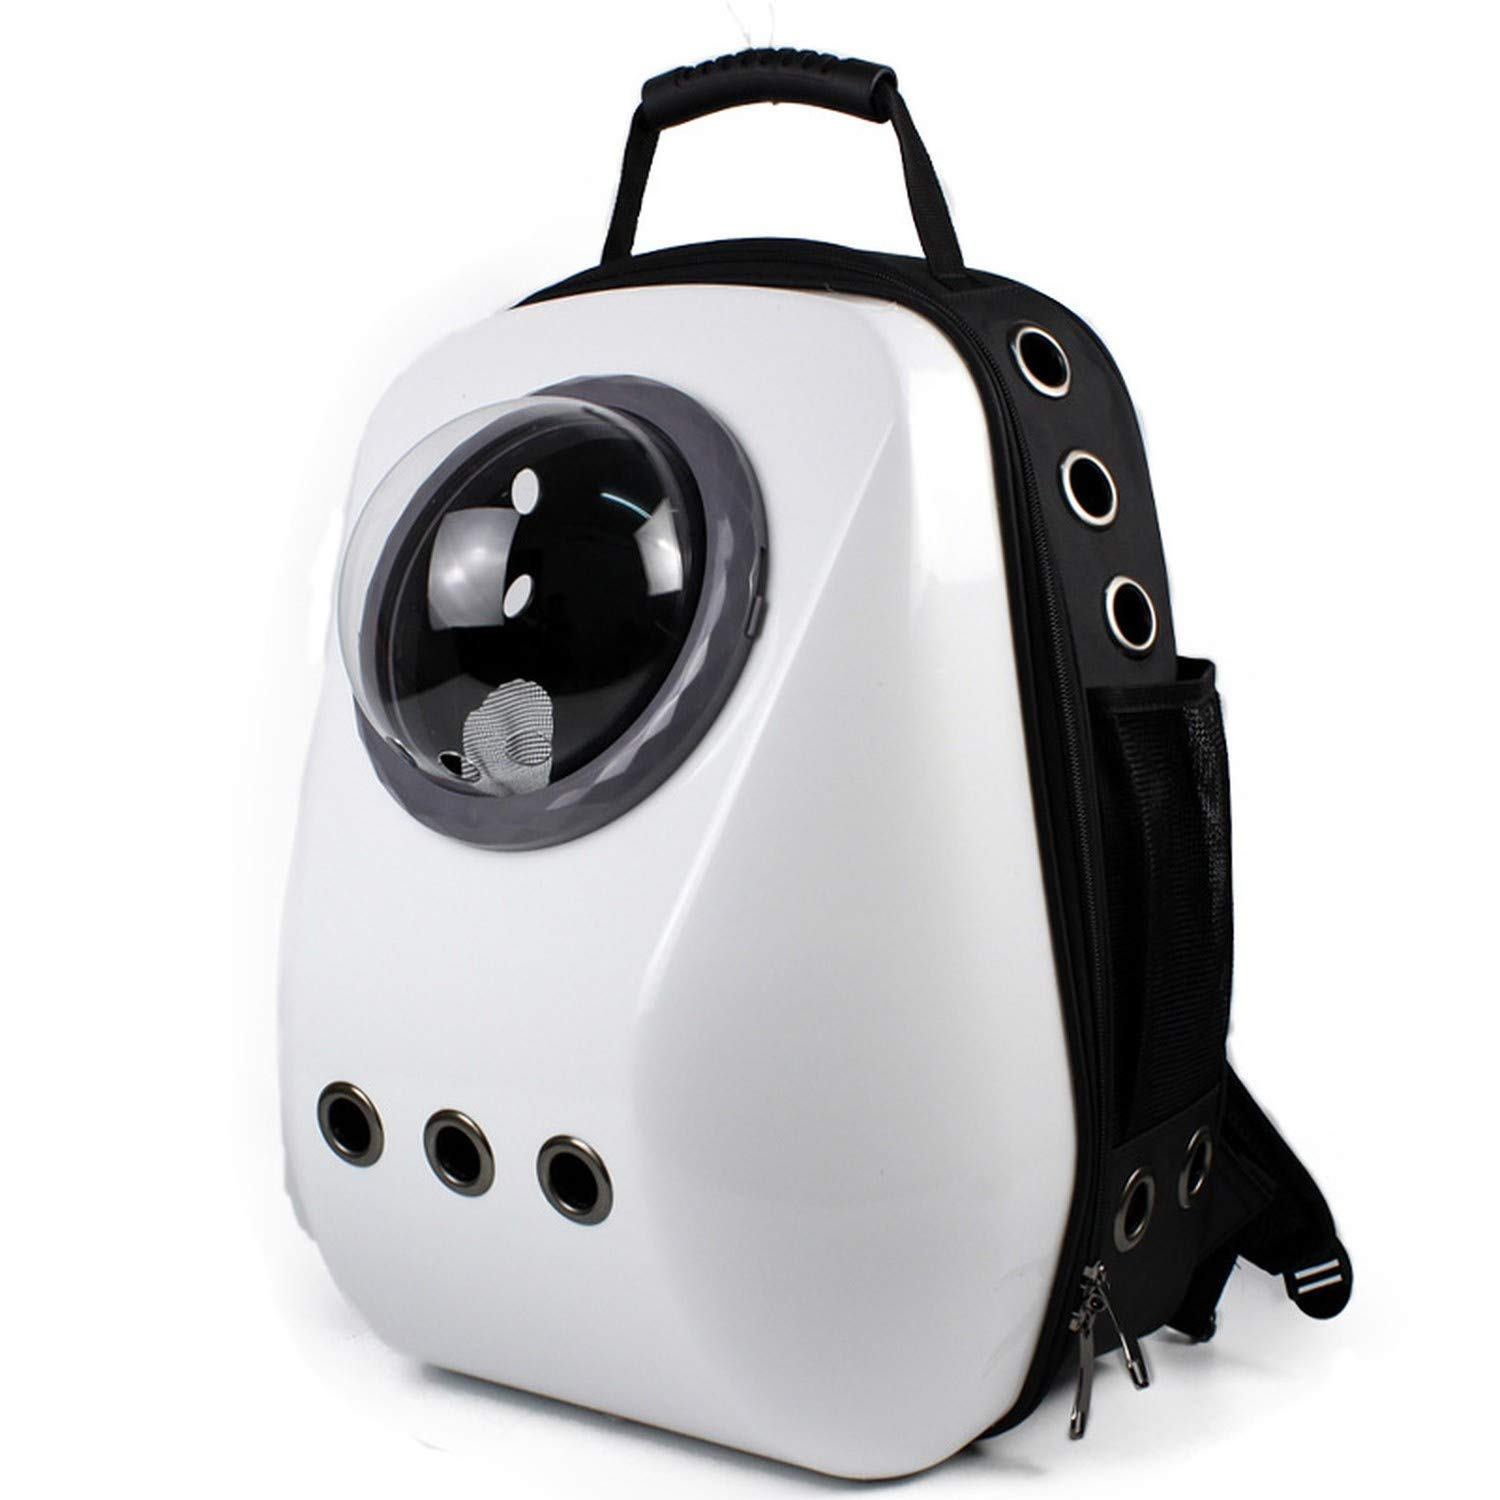 Amazon.com : shine-hearty Dog Cat Backpack Space Capsule Astronaut Outdoor Travel Pet Carrier Dog Cat Carrier Mochila gato, 1, M : Pet Supplies